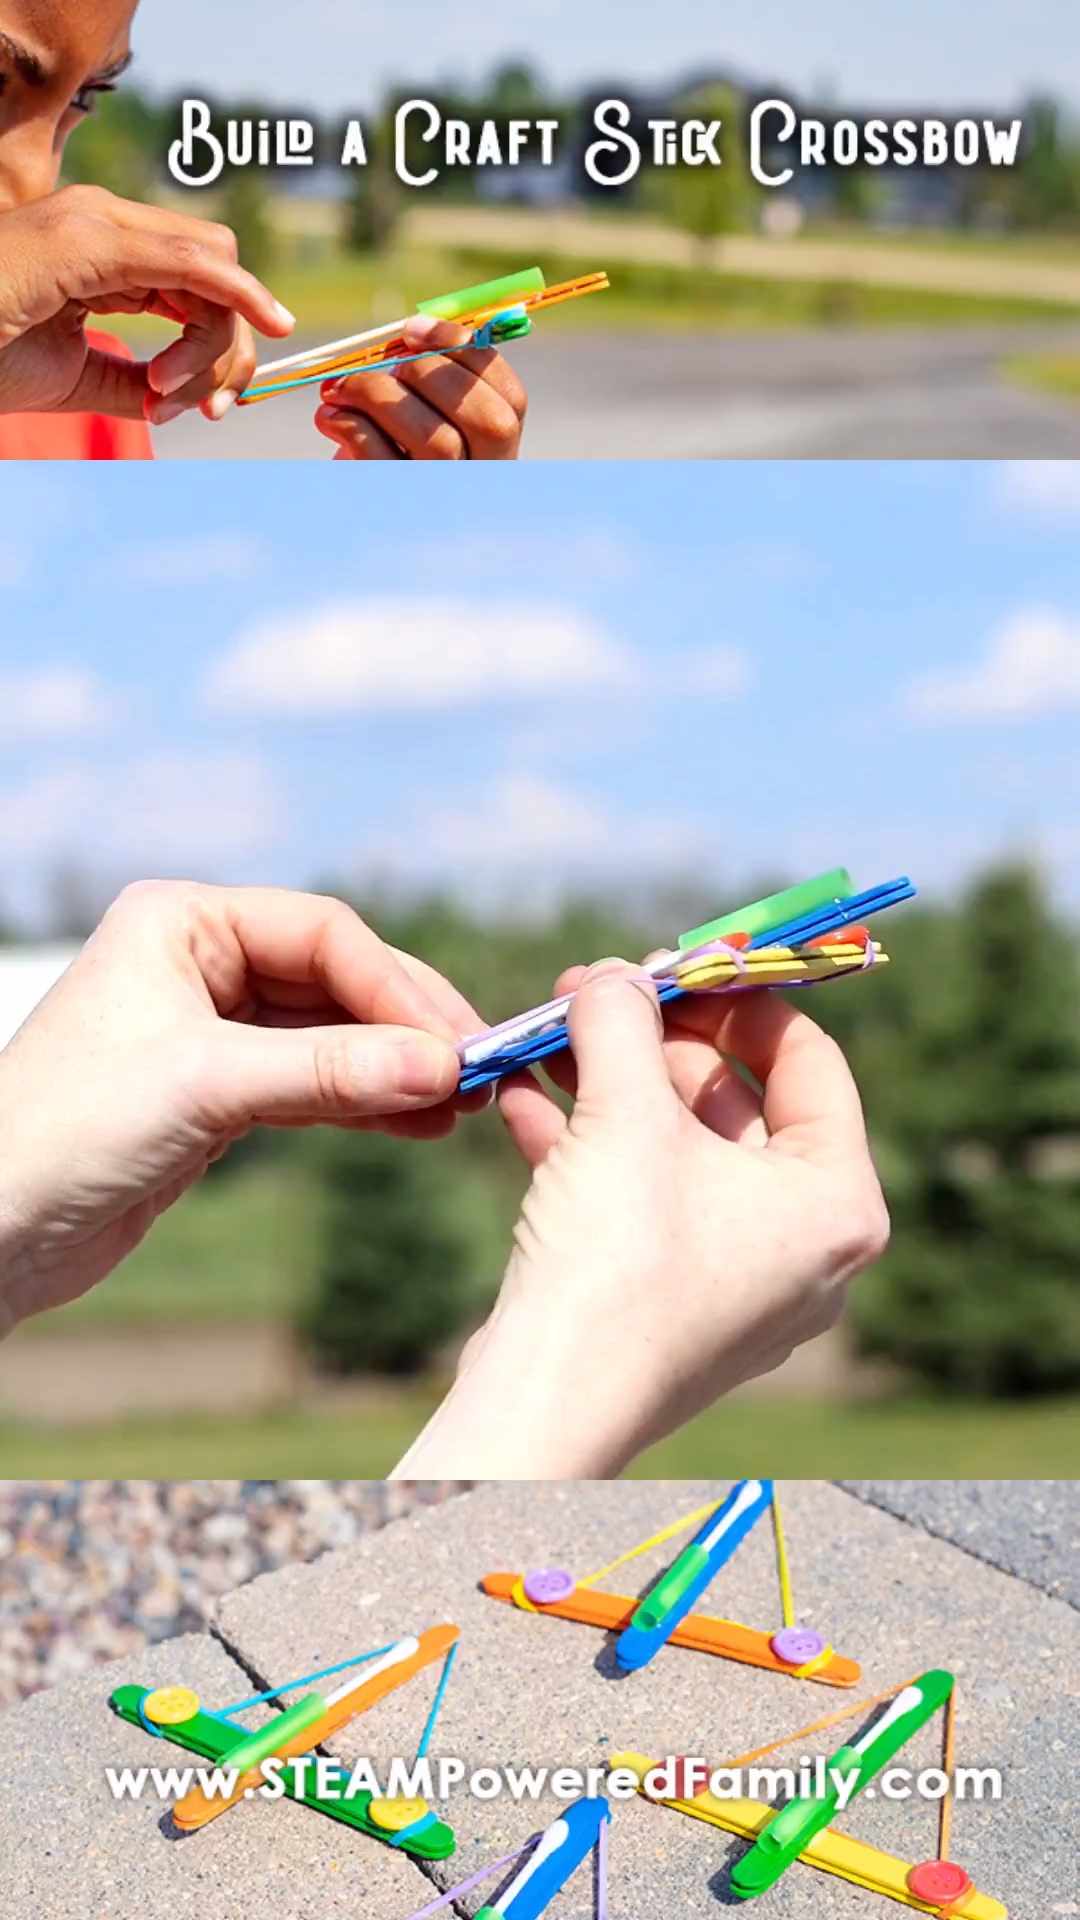 How To Build a Craft Stick Crossbow Launcher